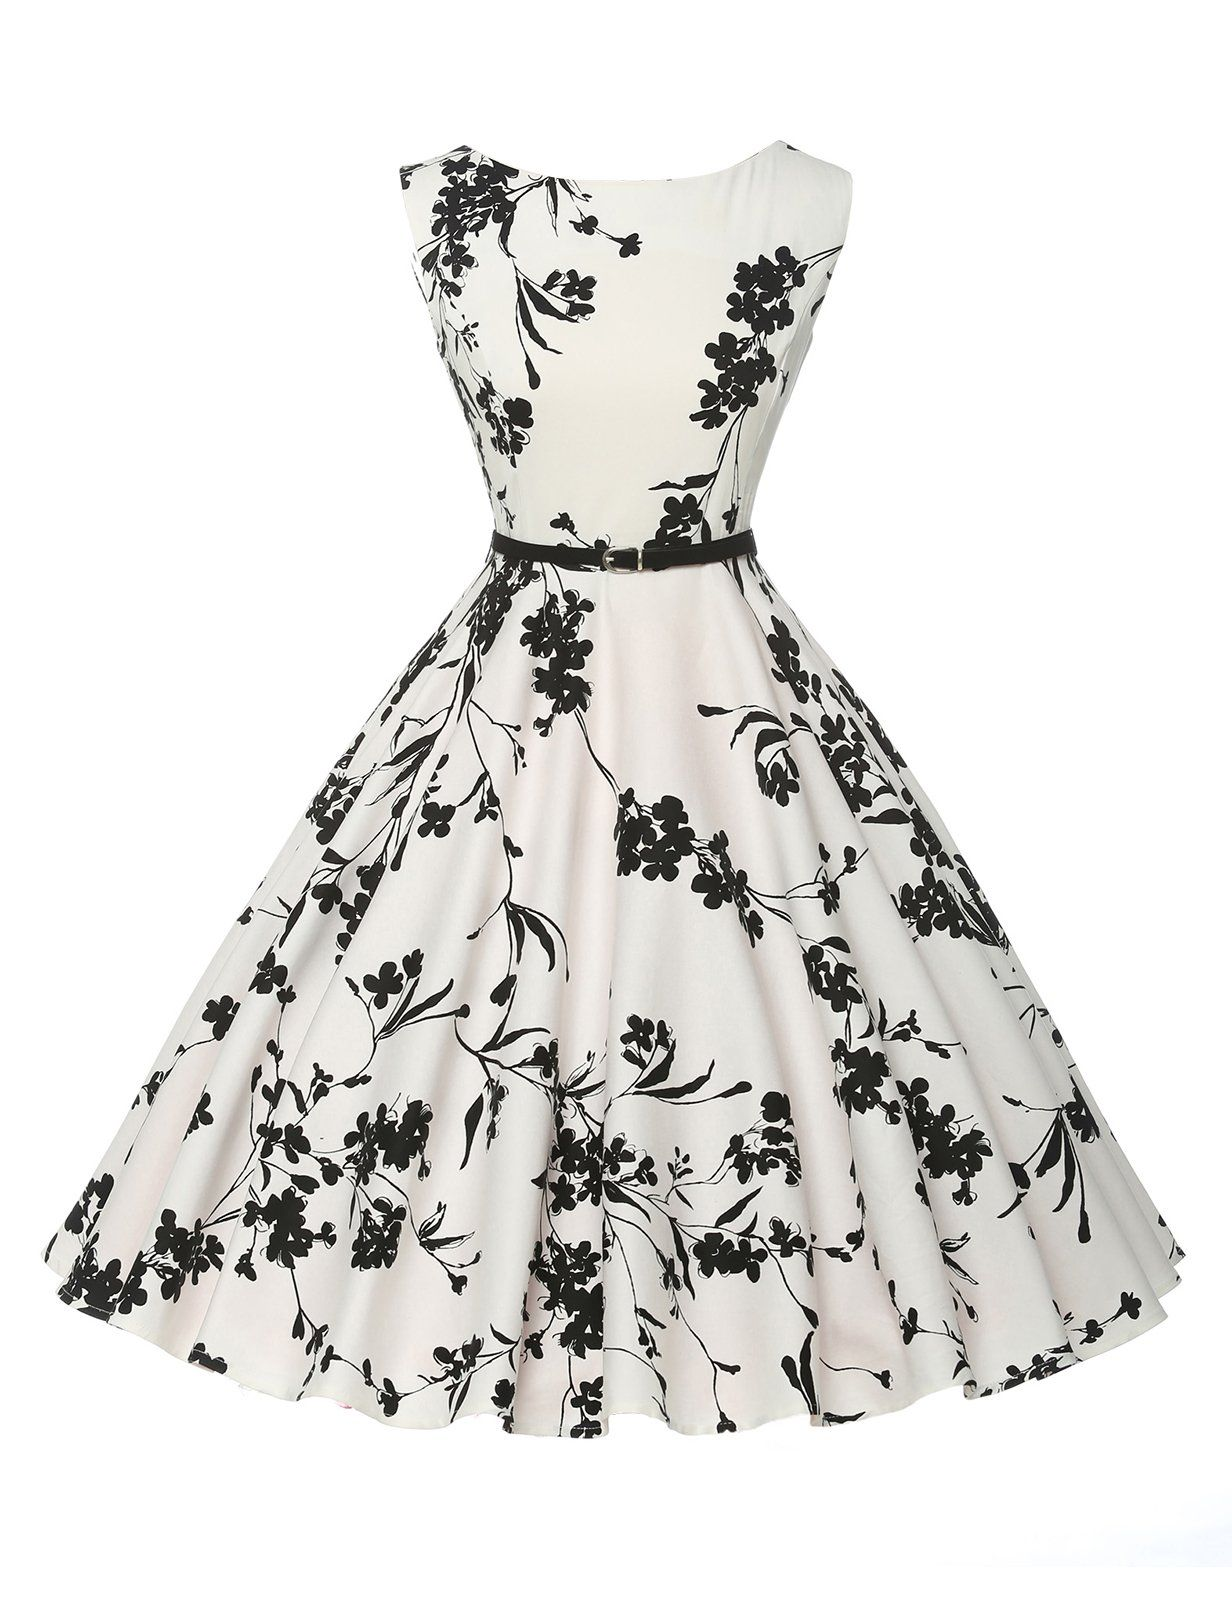 Charmian Elegant Vintage Floral Print Sleeveless Round Neck Casual Party  Swing Dress with Black Narrow Waist Belt